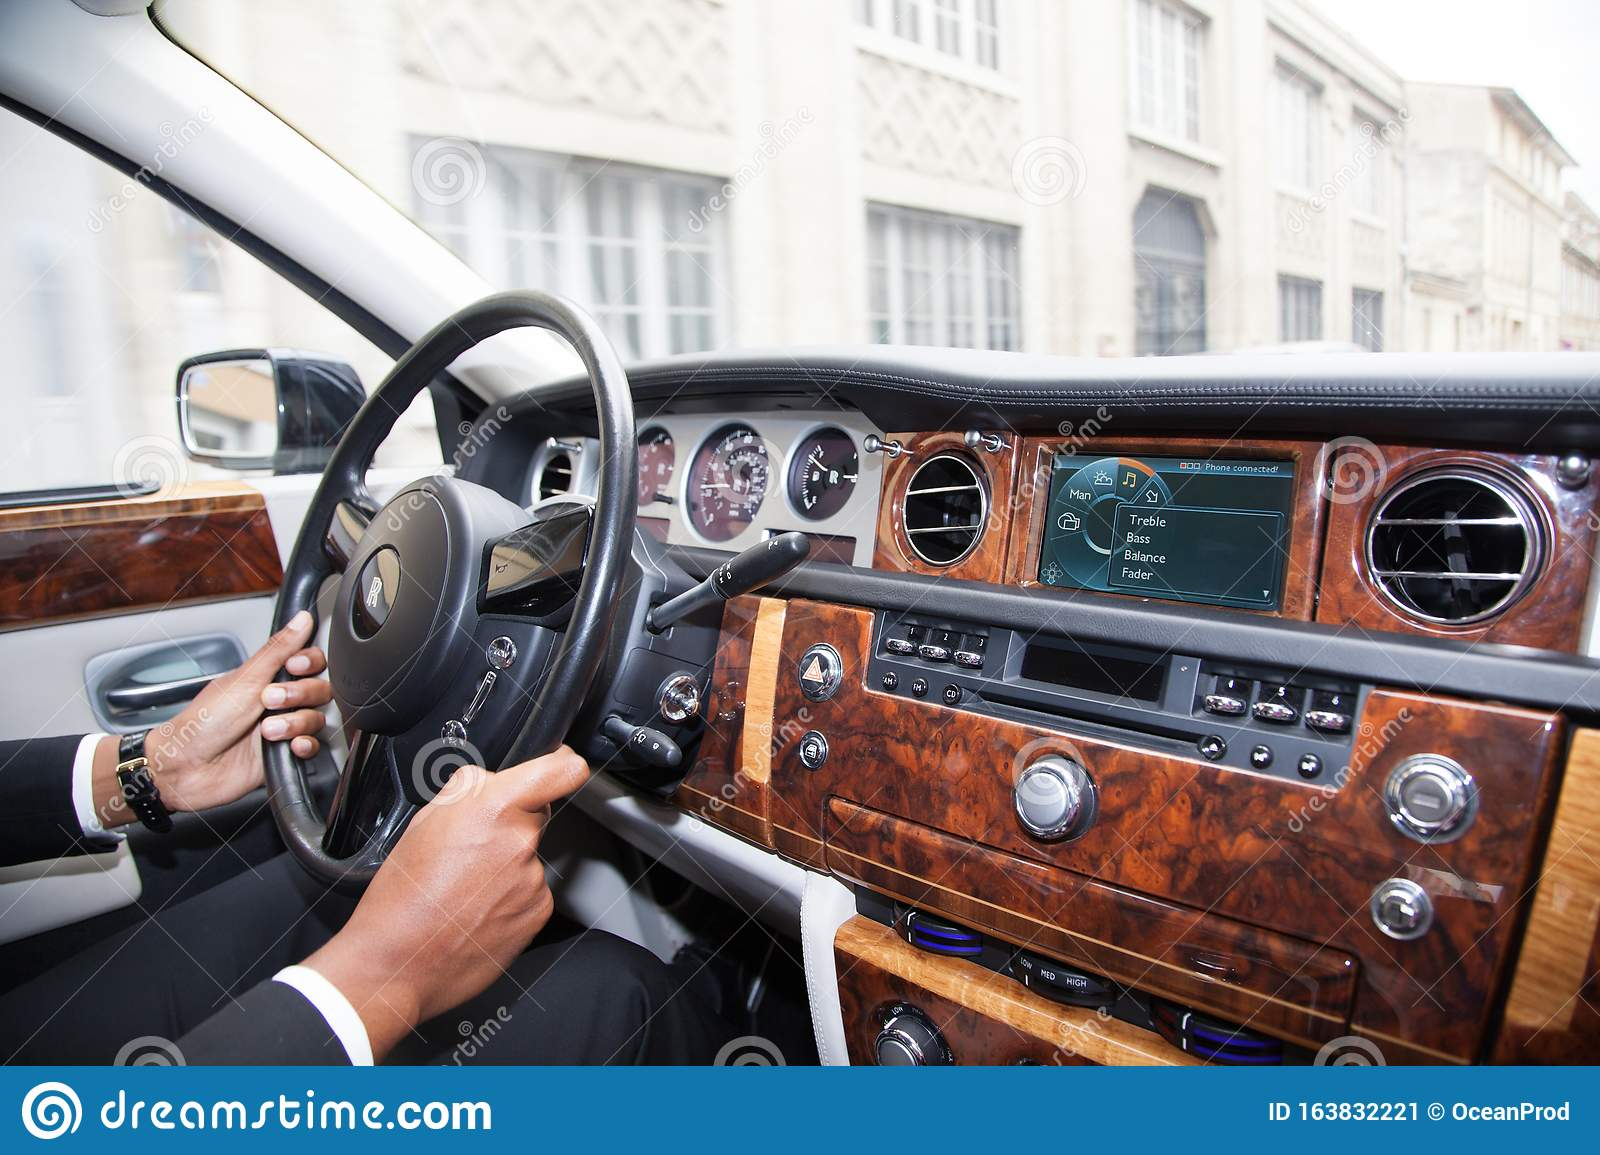 Bordeaux Aquitaine France 11 07 2019 Rolls Royce Phantom Interior View Of Luxury Car Dashboard Steering Wheel Supercar Editorial Photo Image Of Automobile Control 163832221